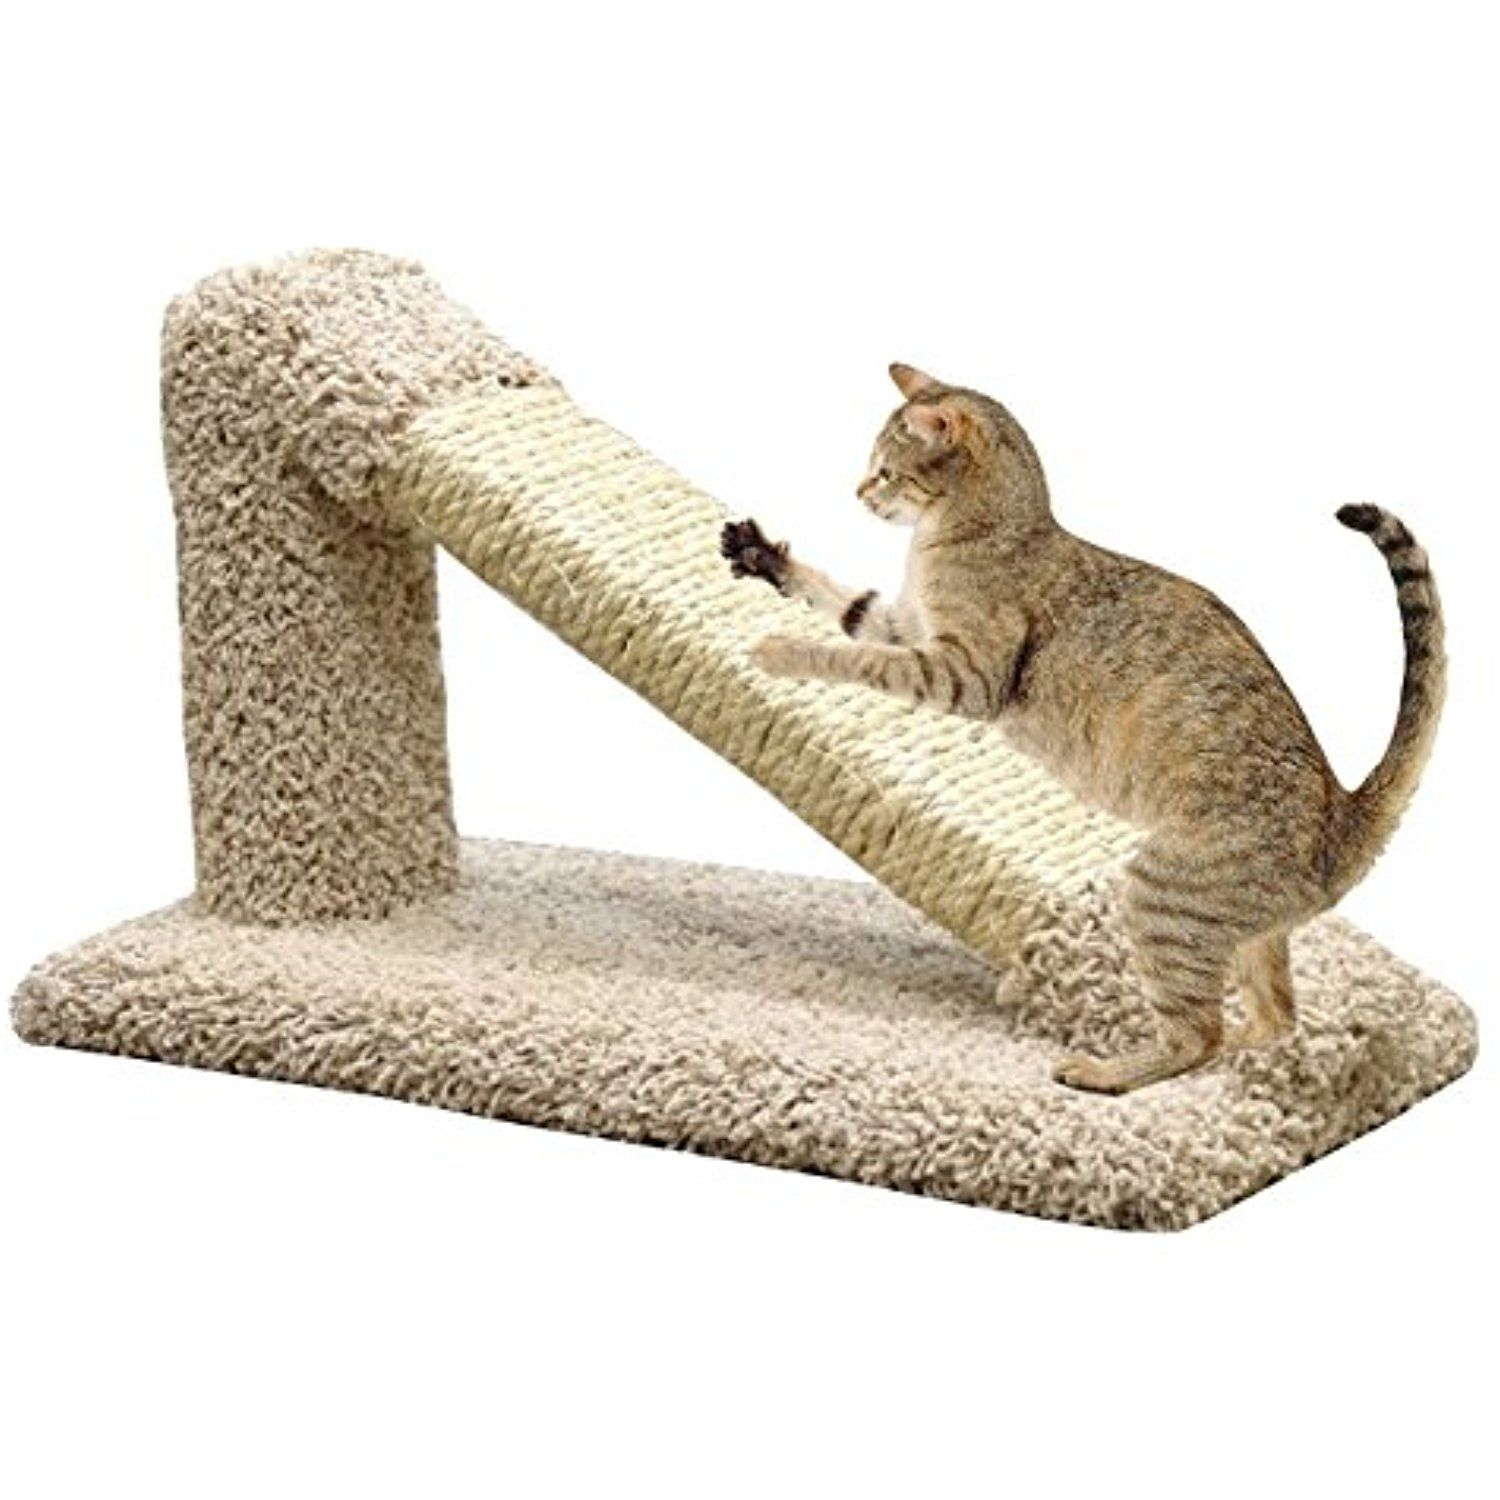 USA Made Angled Cat Scratching Post Sisal in Beige Carpet